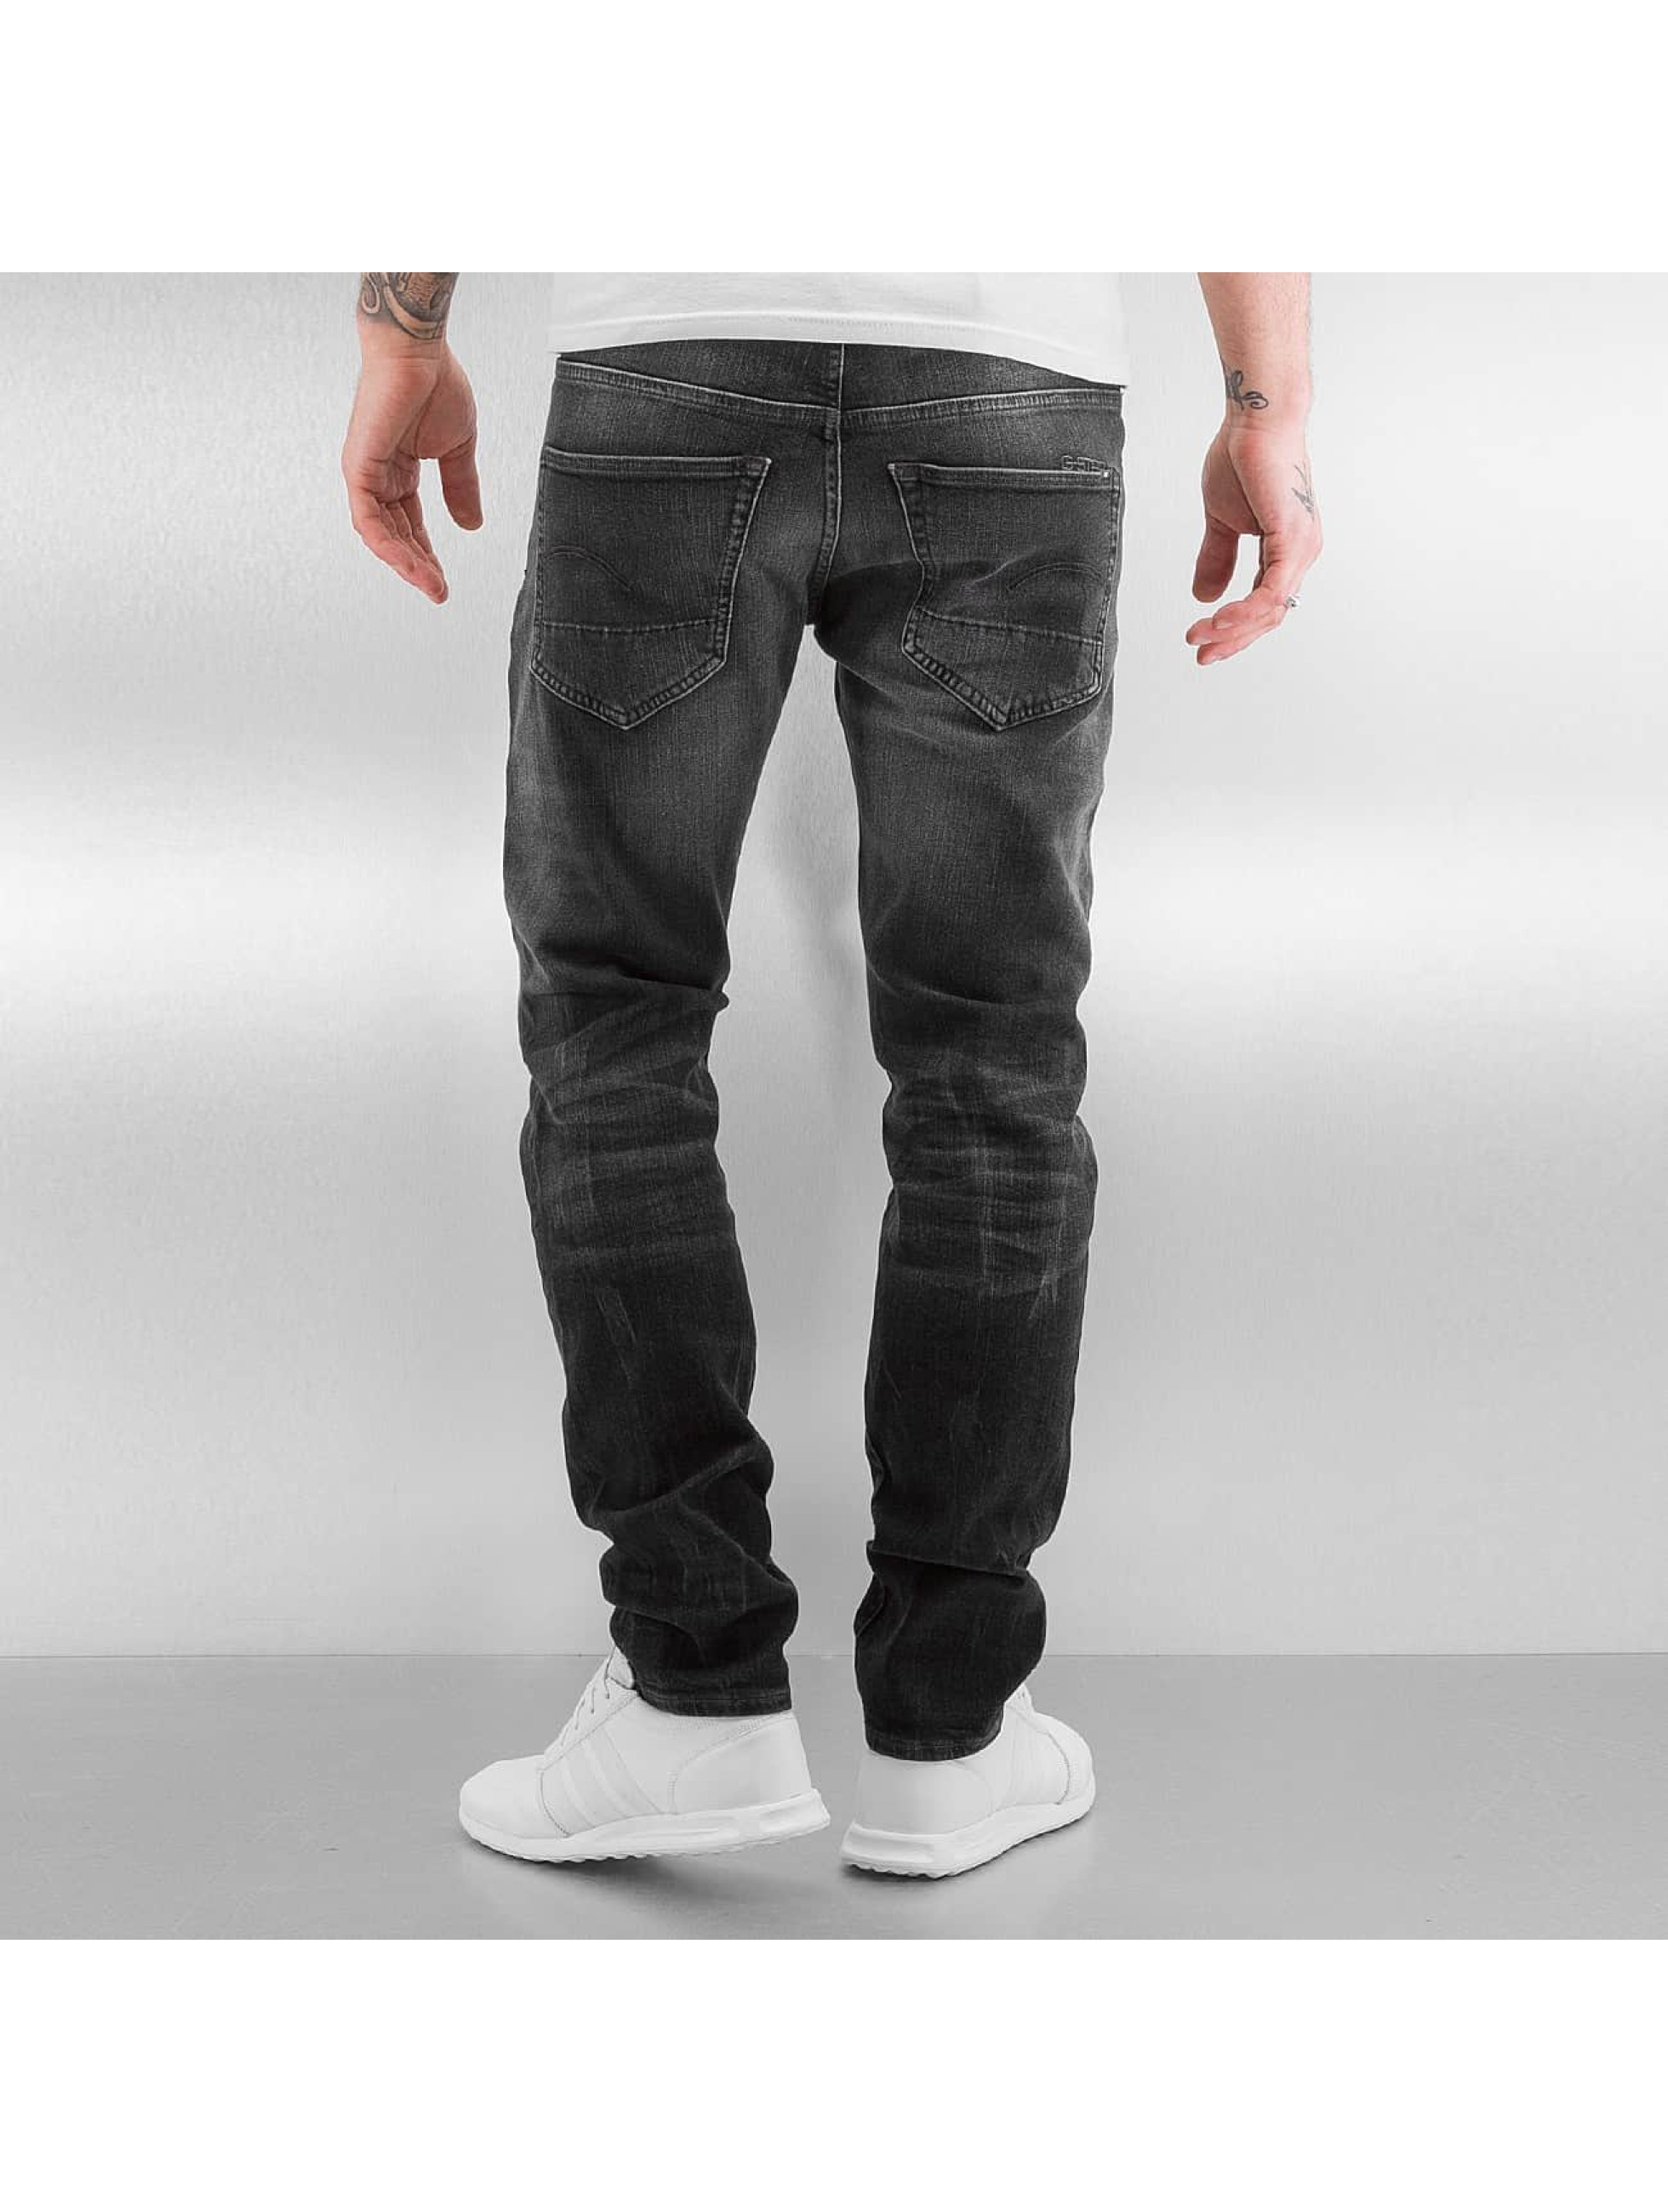 G-Star Antifit 3301 Tapered Slader Bionic Black black